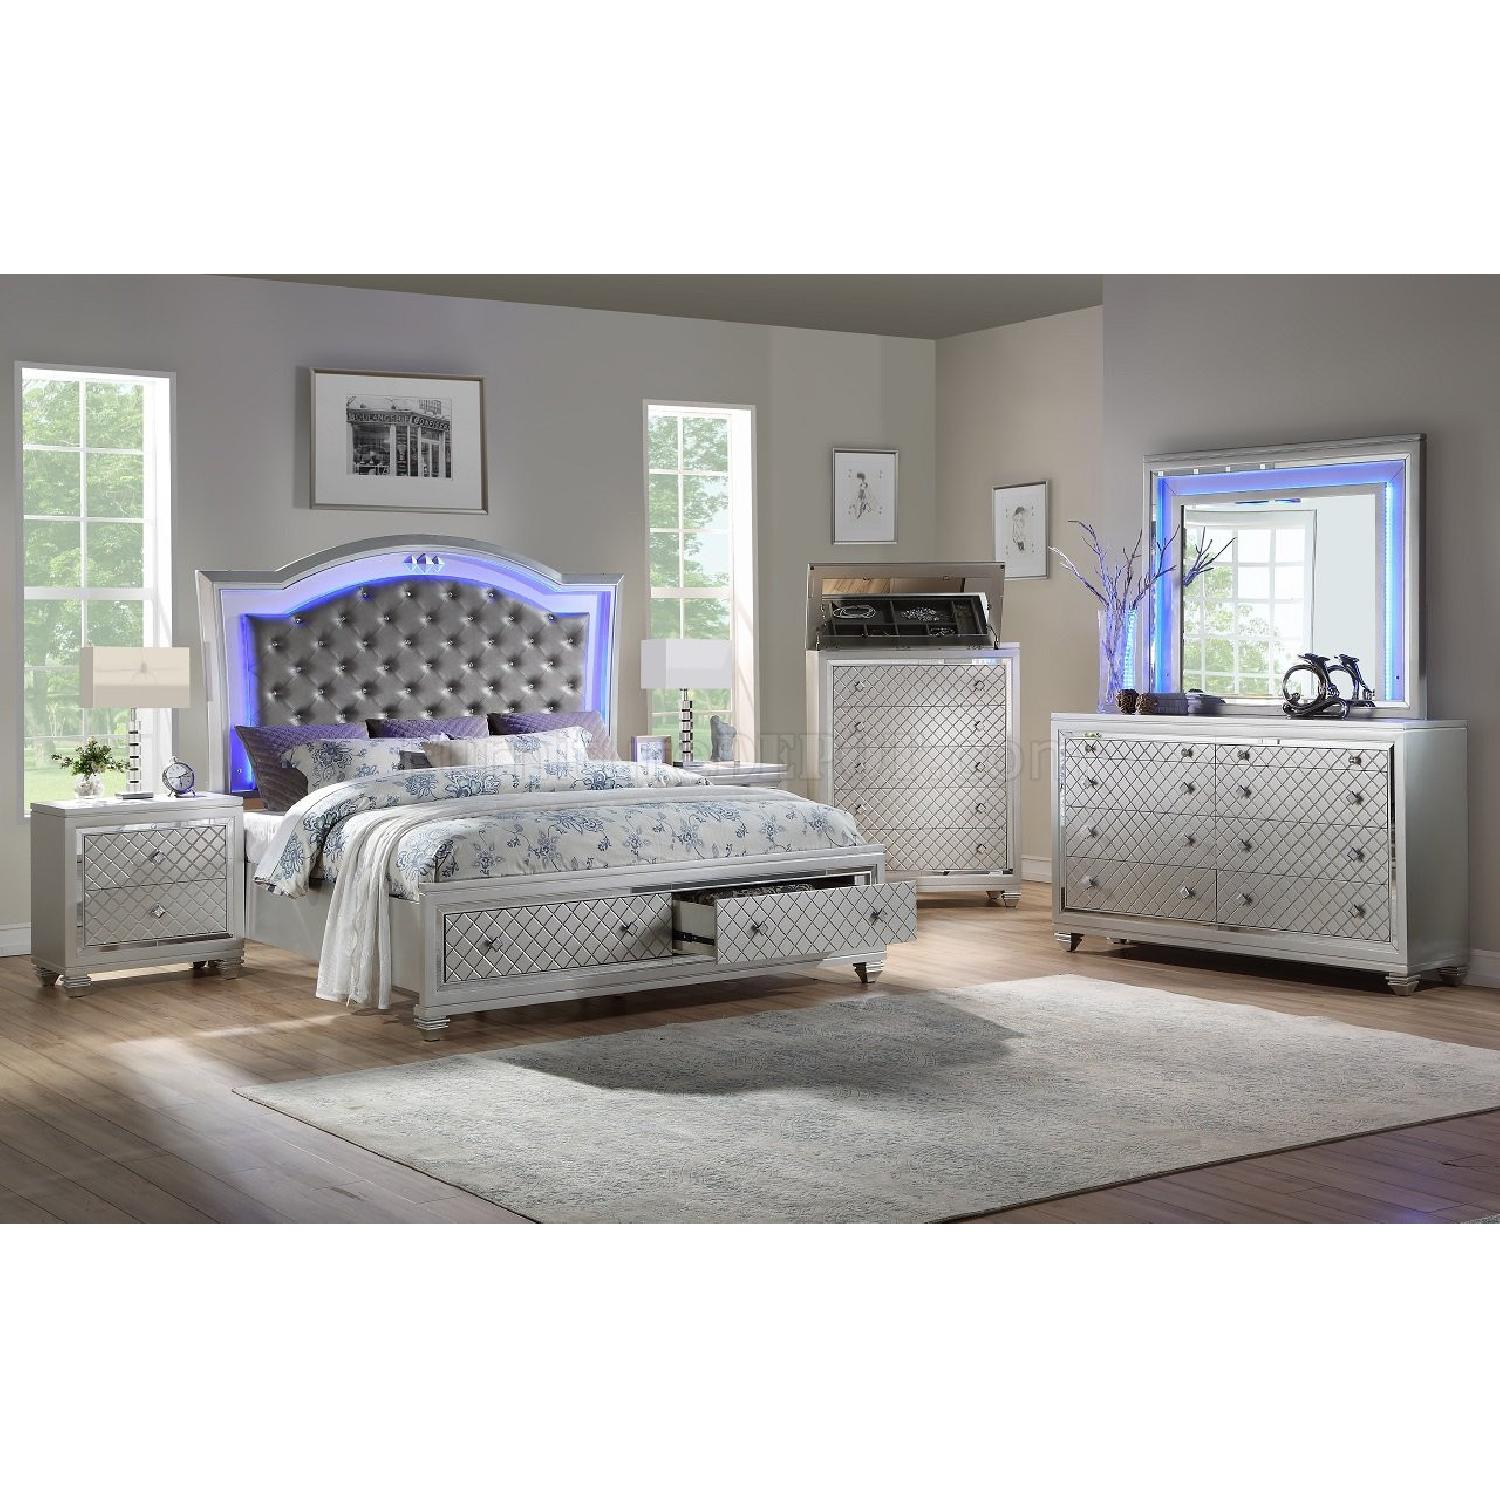 Silver Queen Size Bed w/ Storage & Lights - image-1